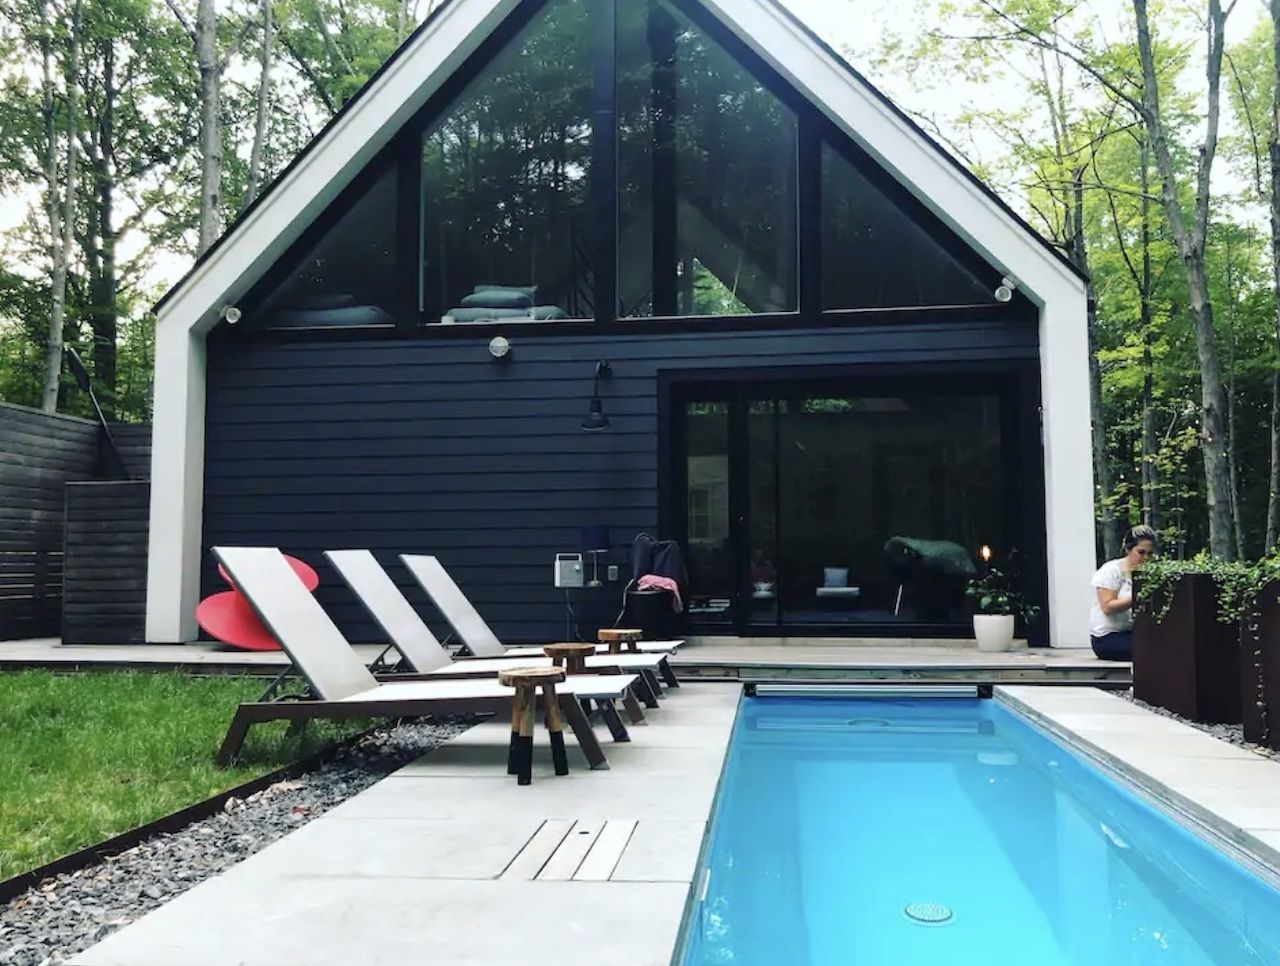 Best Cozy Airbnbs In Upstate New York In 2020